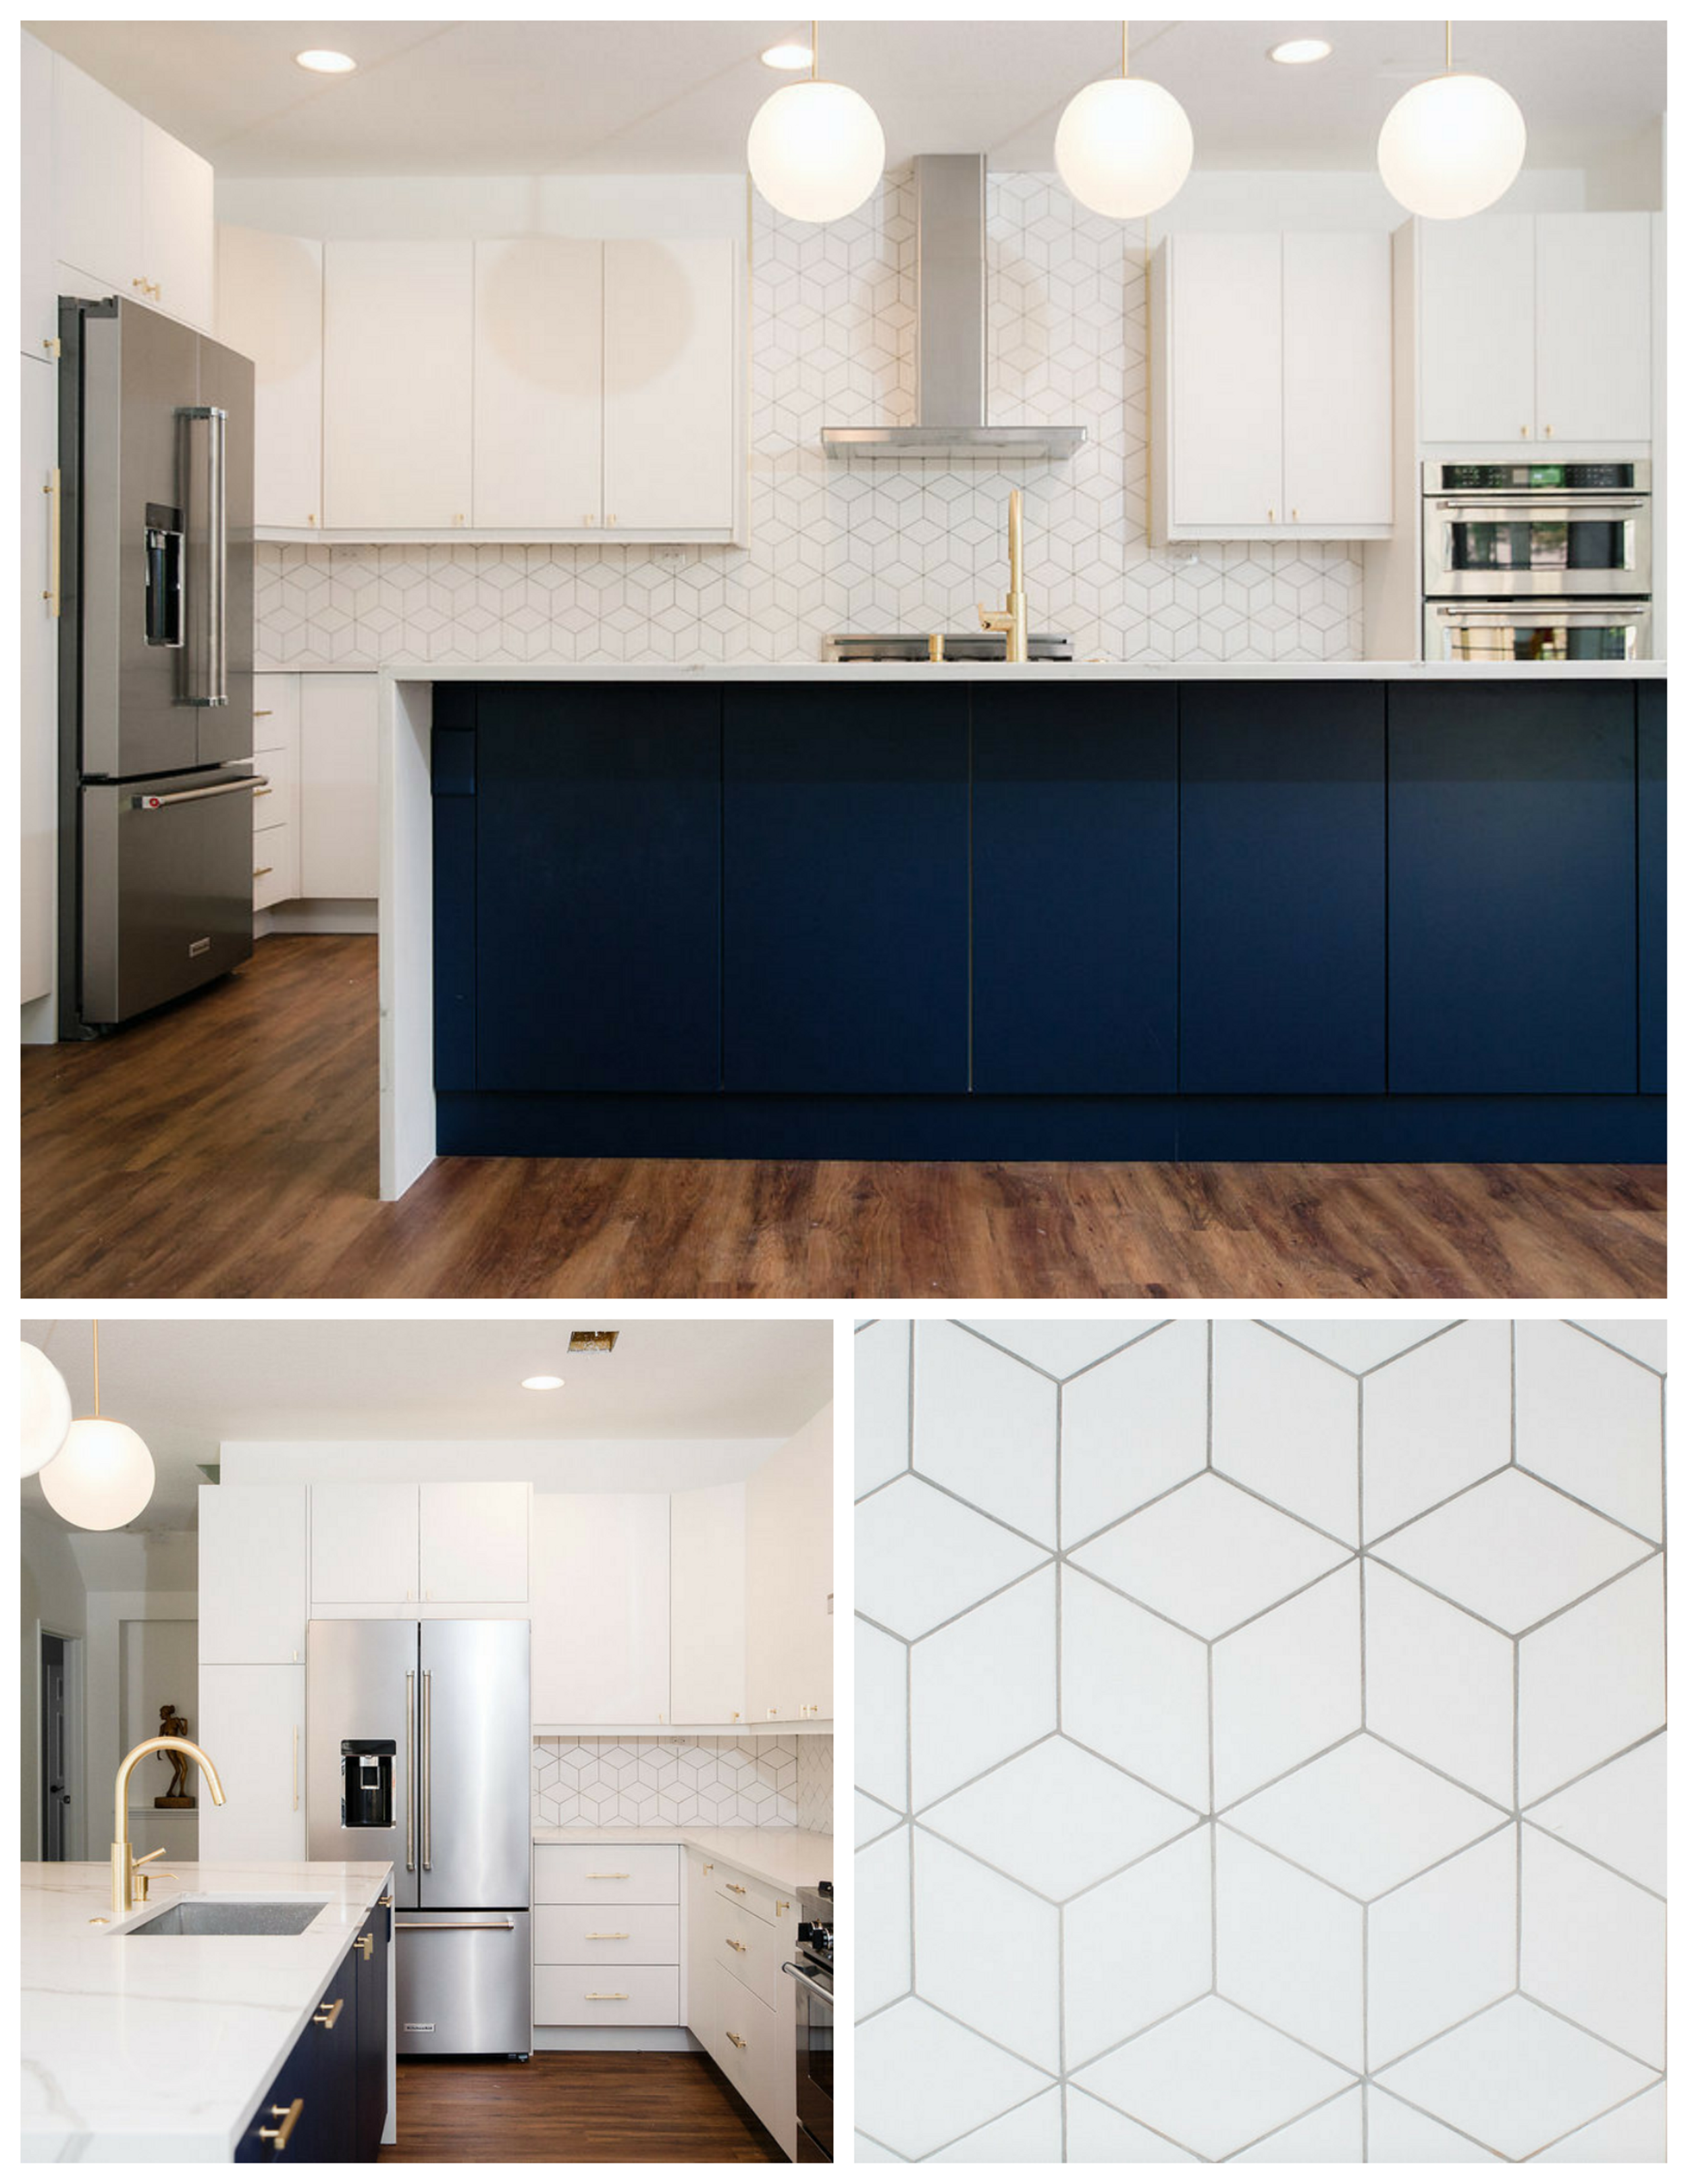 In addition to the waterfall countertop and blue and white cabinetry, this kitchen features Newport Brass fixtures, stainless steel appliances,and diamond-shaped, fire clay tiles installed to create a cube patterned backsplash.